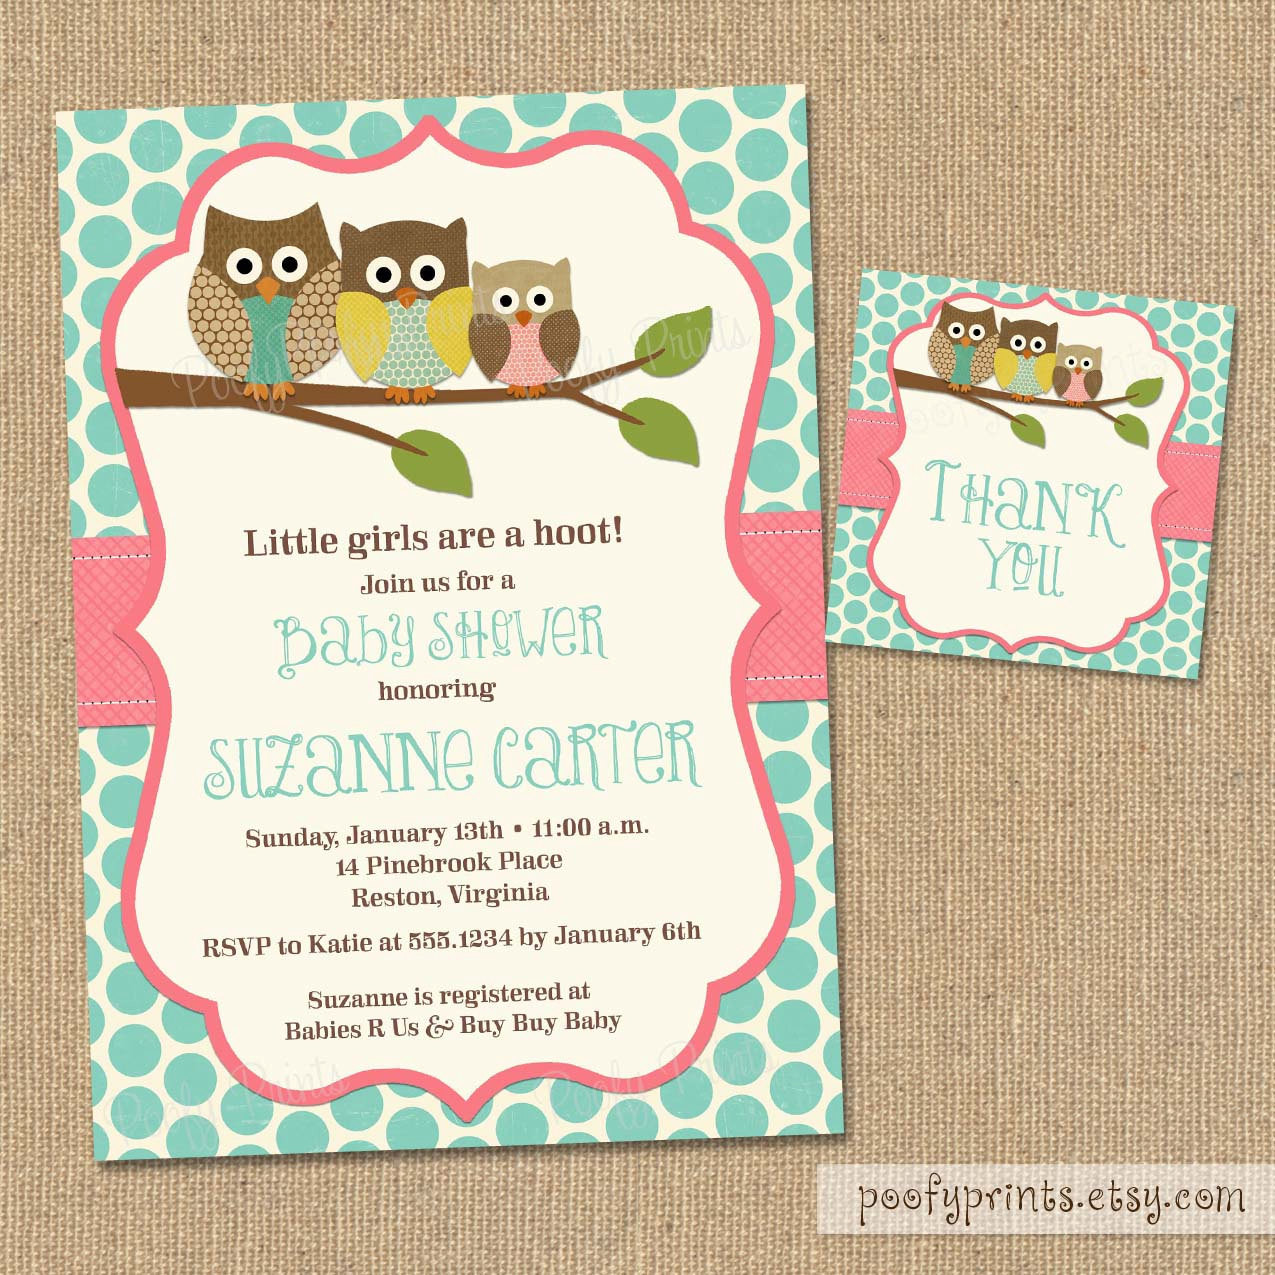 Best ideas about Baby Shower Invitations DIY . Save or Pin Owl Baby Shower Invitations DIY Printable Baby Girl Shower Now.